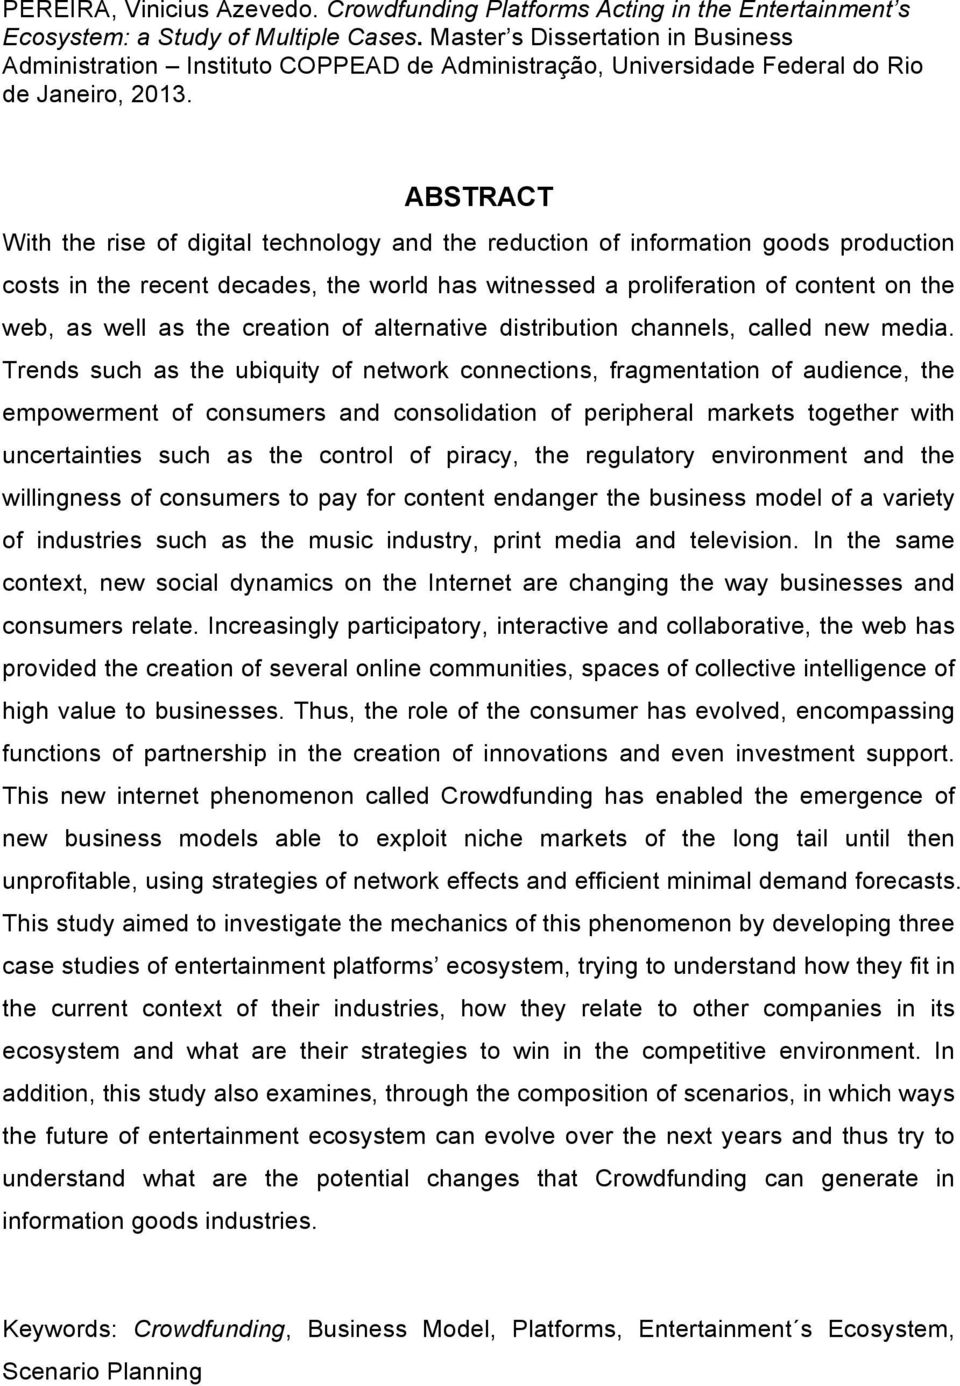 ABSTRACT With the rise of digital technology and the reduction of information goods production costs in the recent decades, the world has witnessed a proliferation of content on the web, as well as